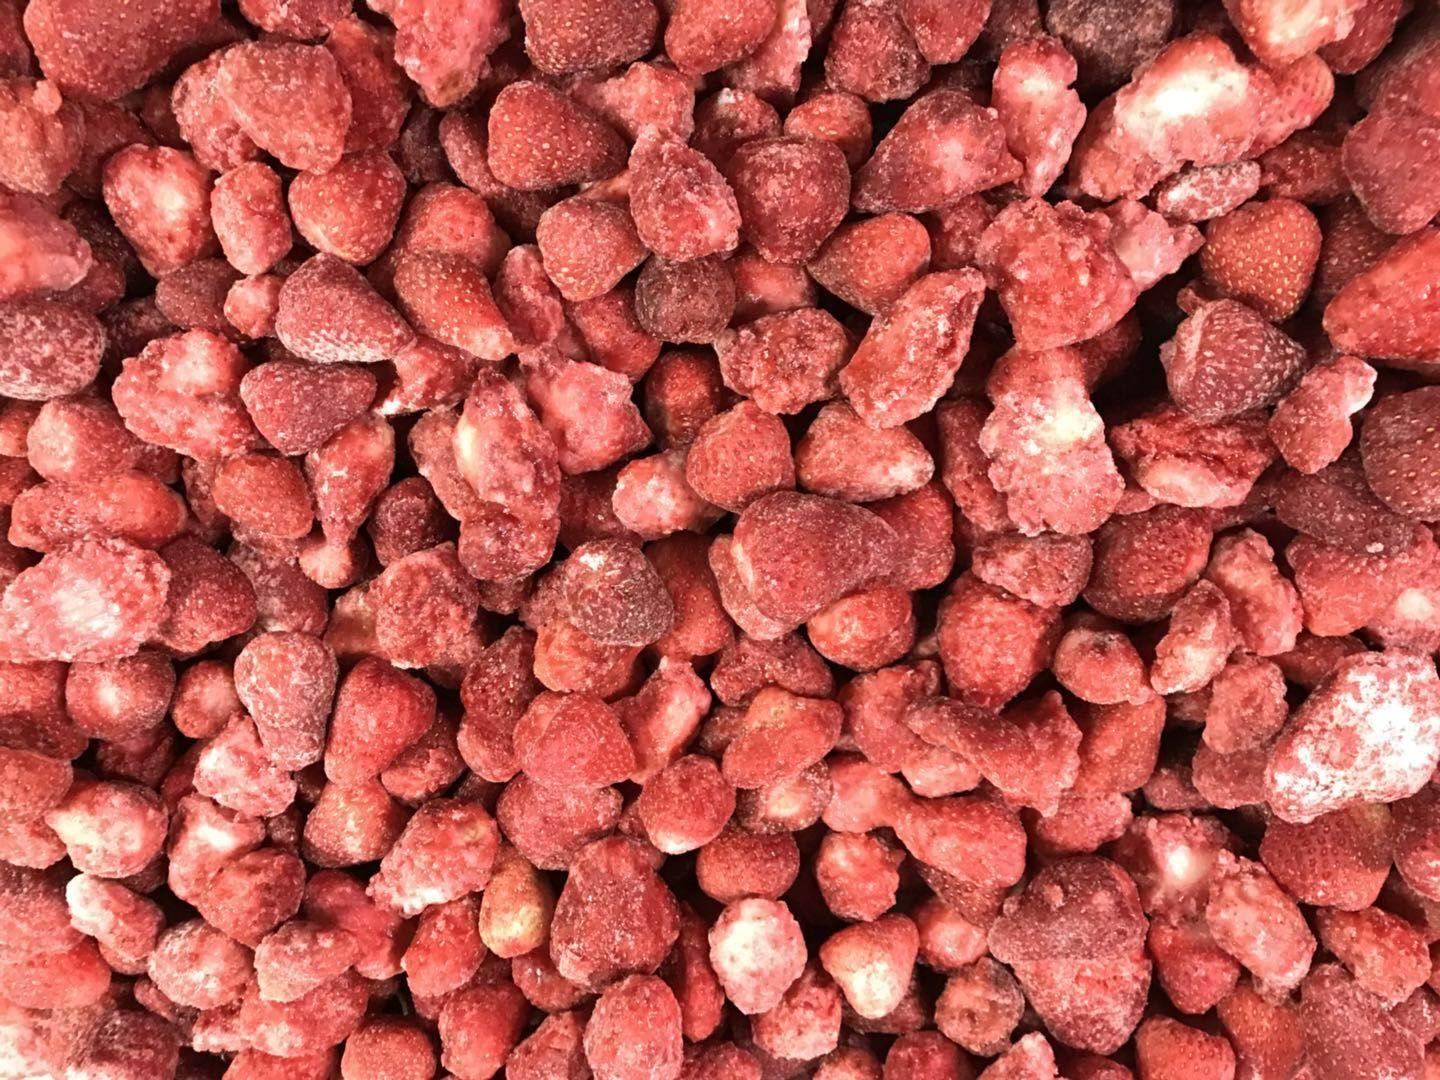 IQF Whole Strawberries,Frozen Whole Strawberries,Grade A/A+B/B/C 14